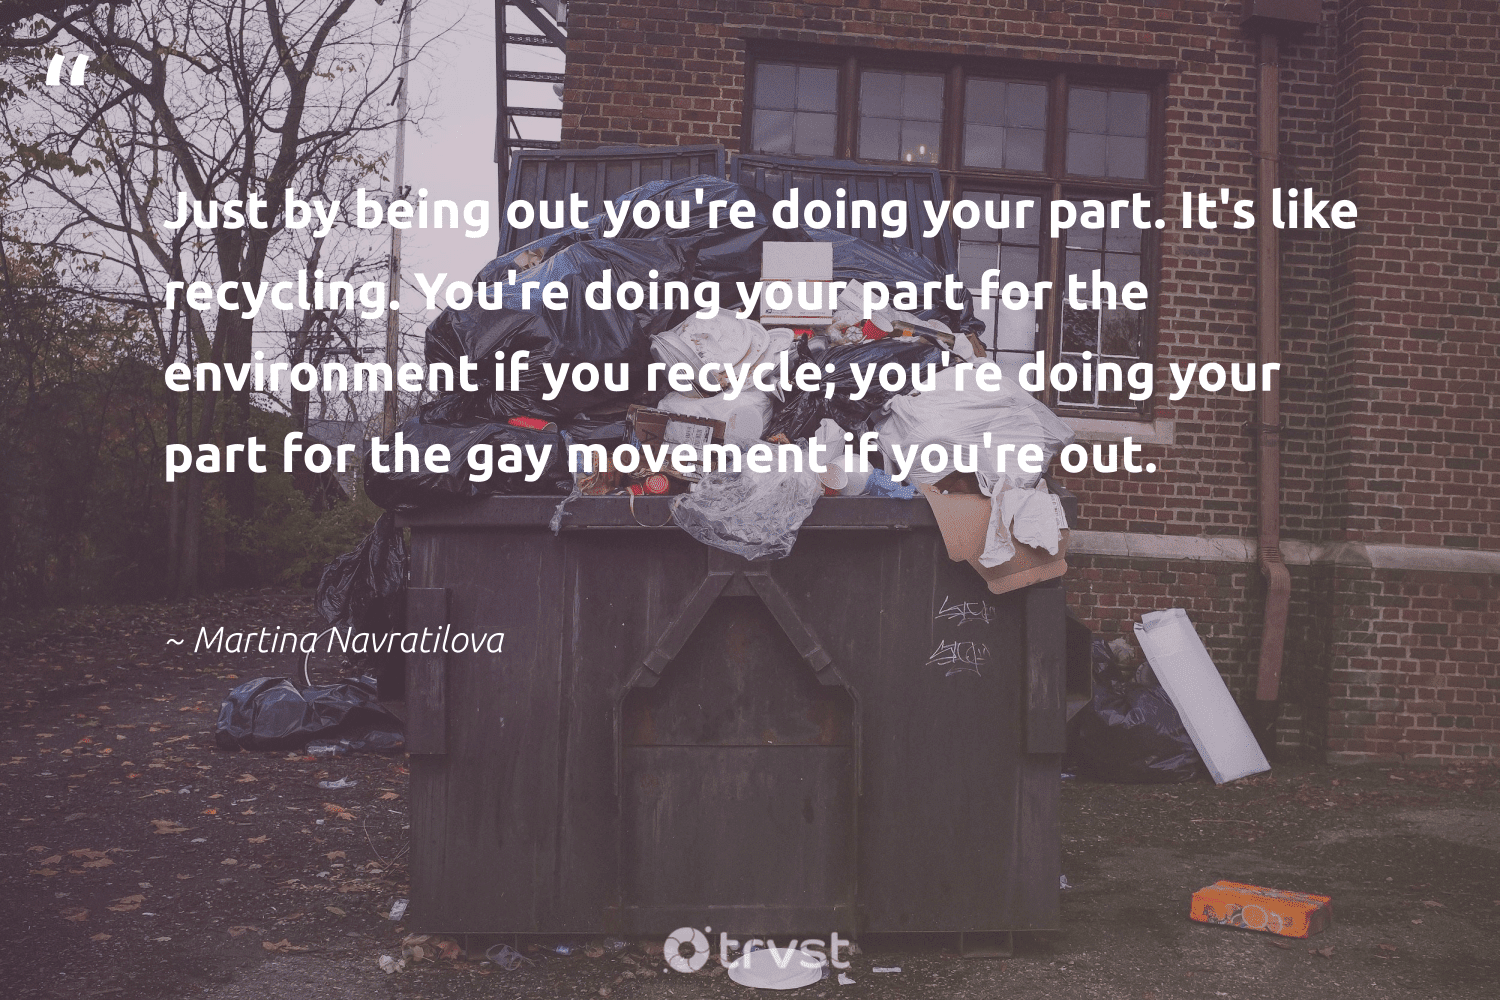 """""""Just by being out you're doing your part. It's like recycling. You're doing your part for the environment if you recycle; you're doing your part for the gay movement if you're out.""""  - Martina Navratilova #trvst #quotes #recycling #gay #environment #reuse #earthdayeveryday #ethical #thinkgreen #repair #wasteless #gogreen"""